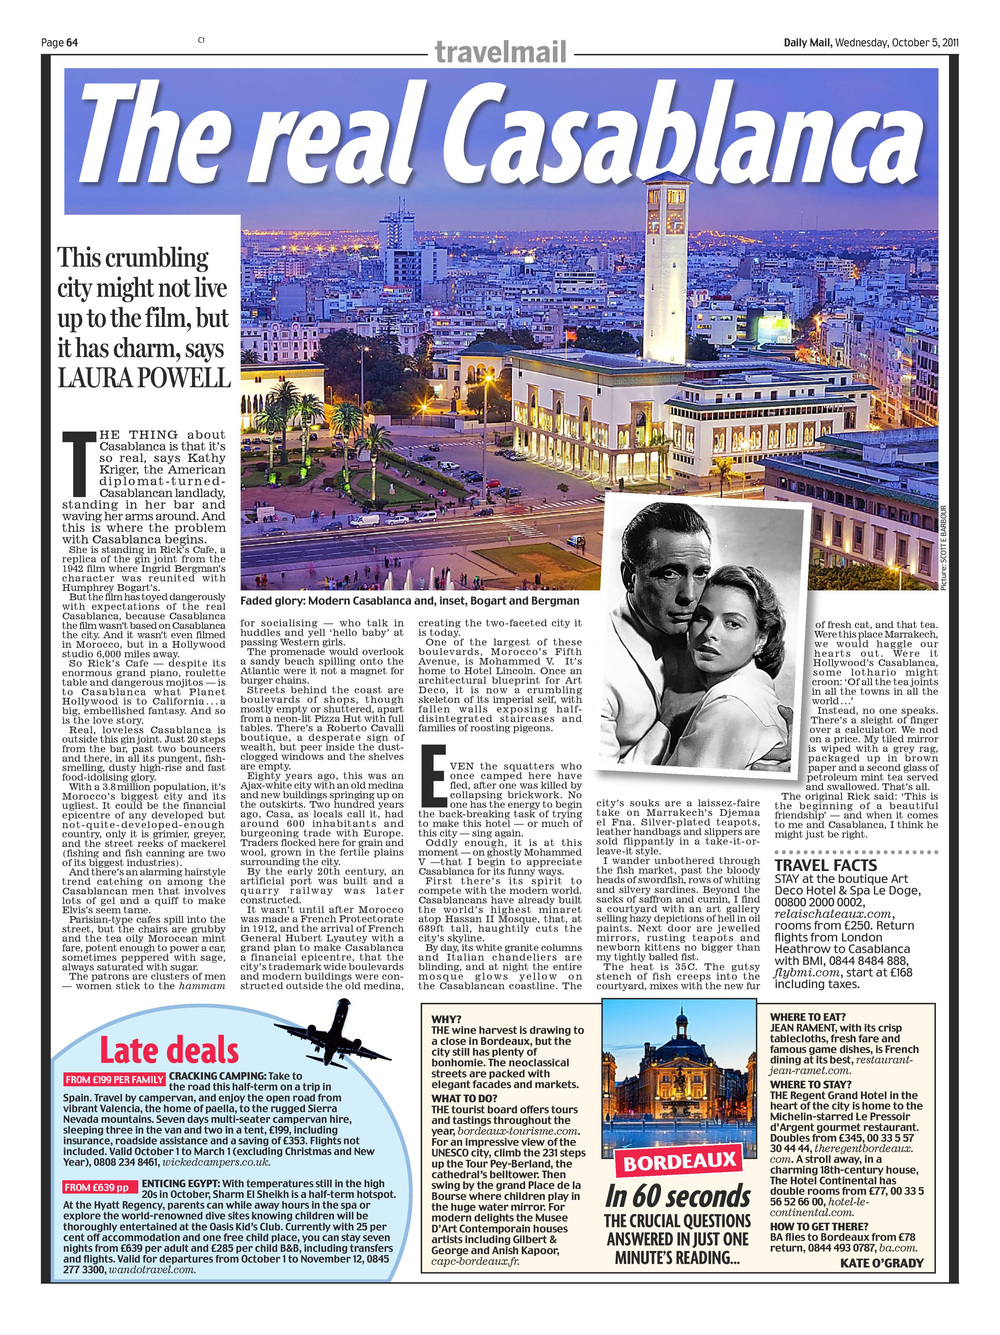 Casablanca   Daily Mail